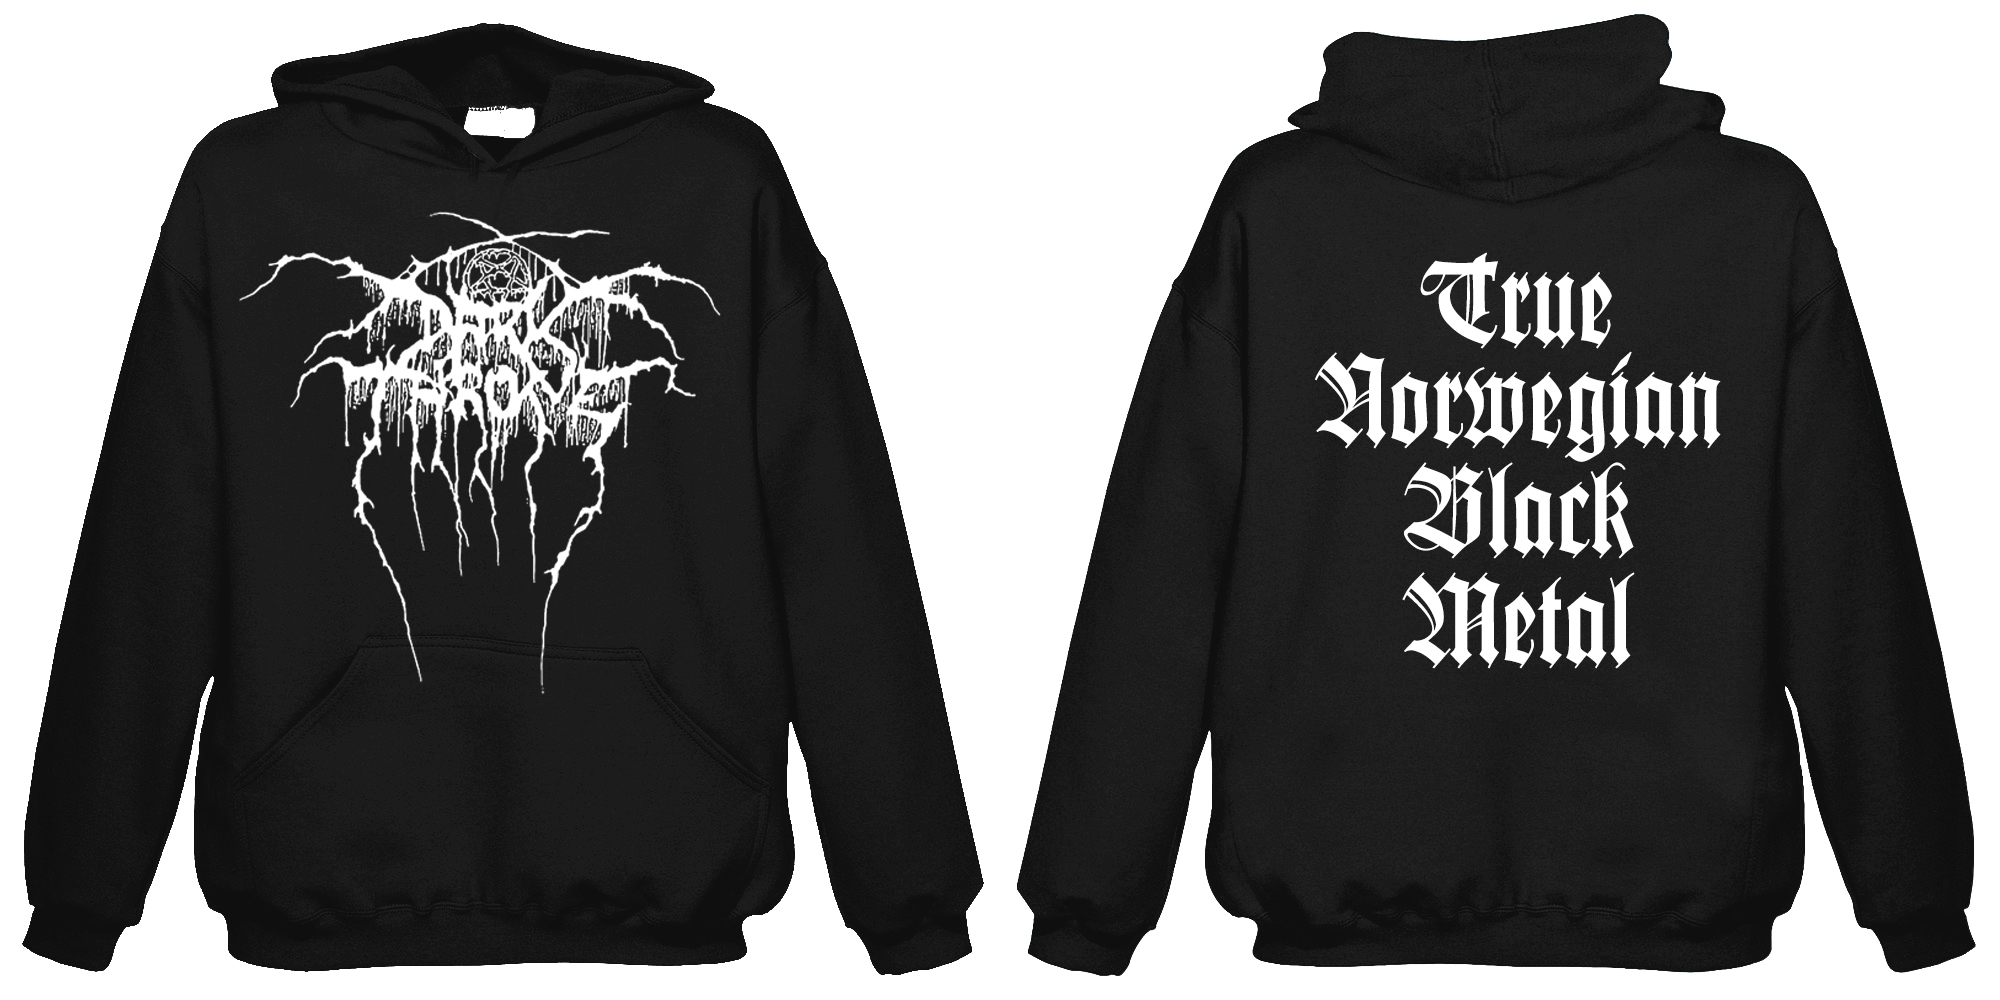 Darkthrone - True Norwegian Black Metal  (Hooded Sweatshirt)